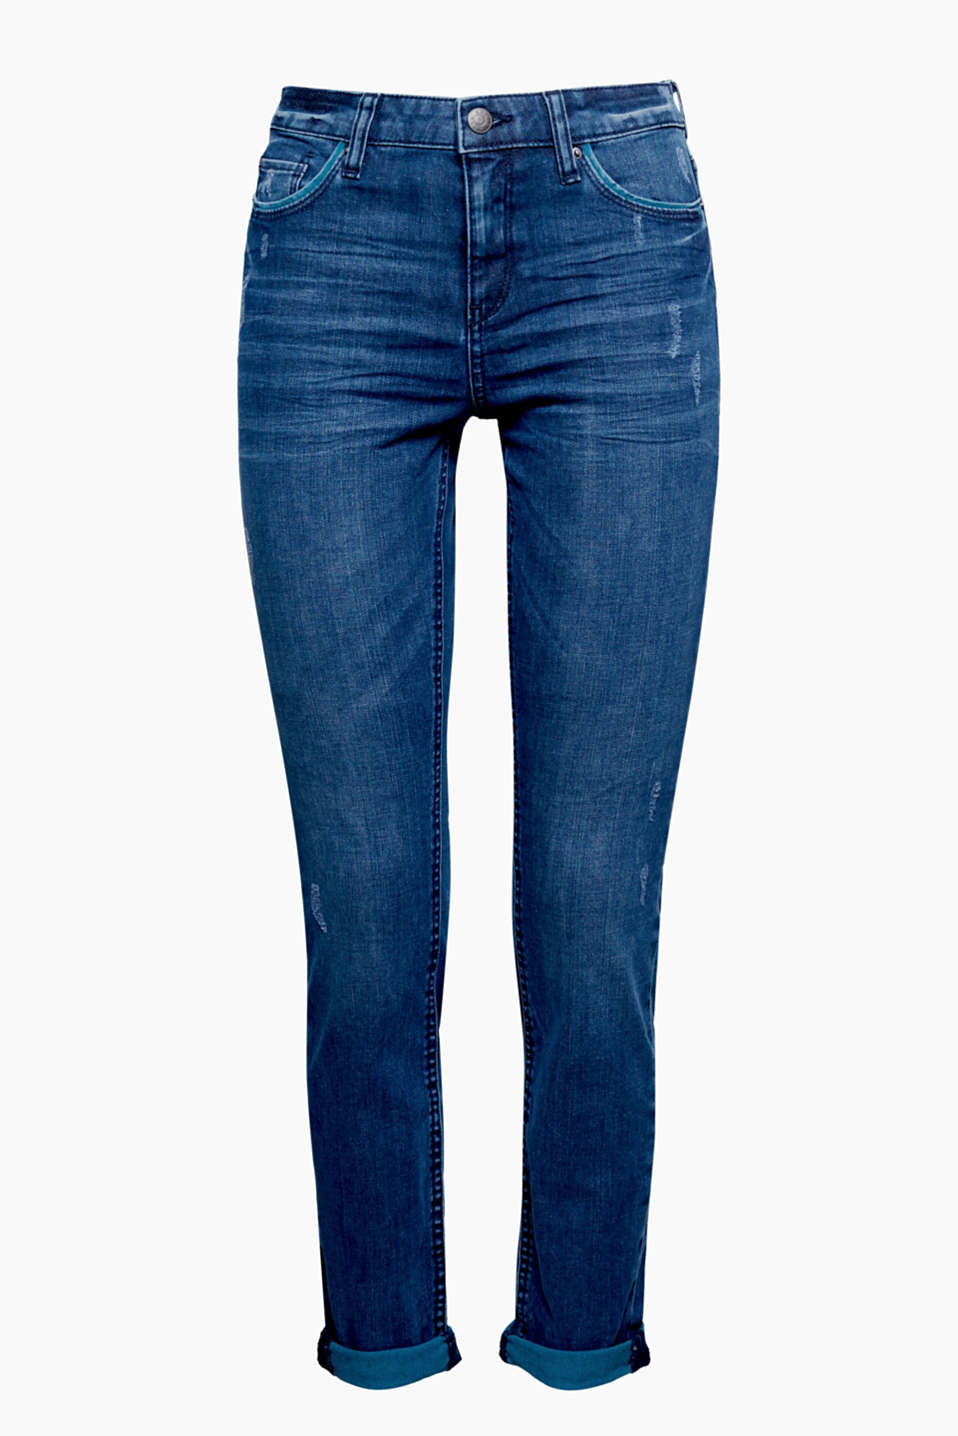 The contrasting coloured detailing and casual vintage finish make these skin-tight jeans mega cool!